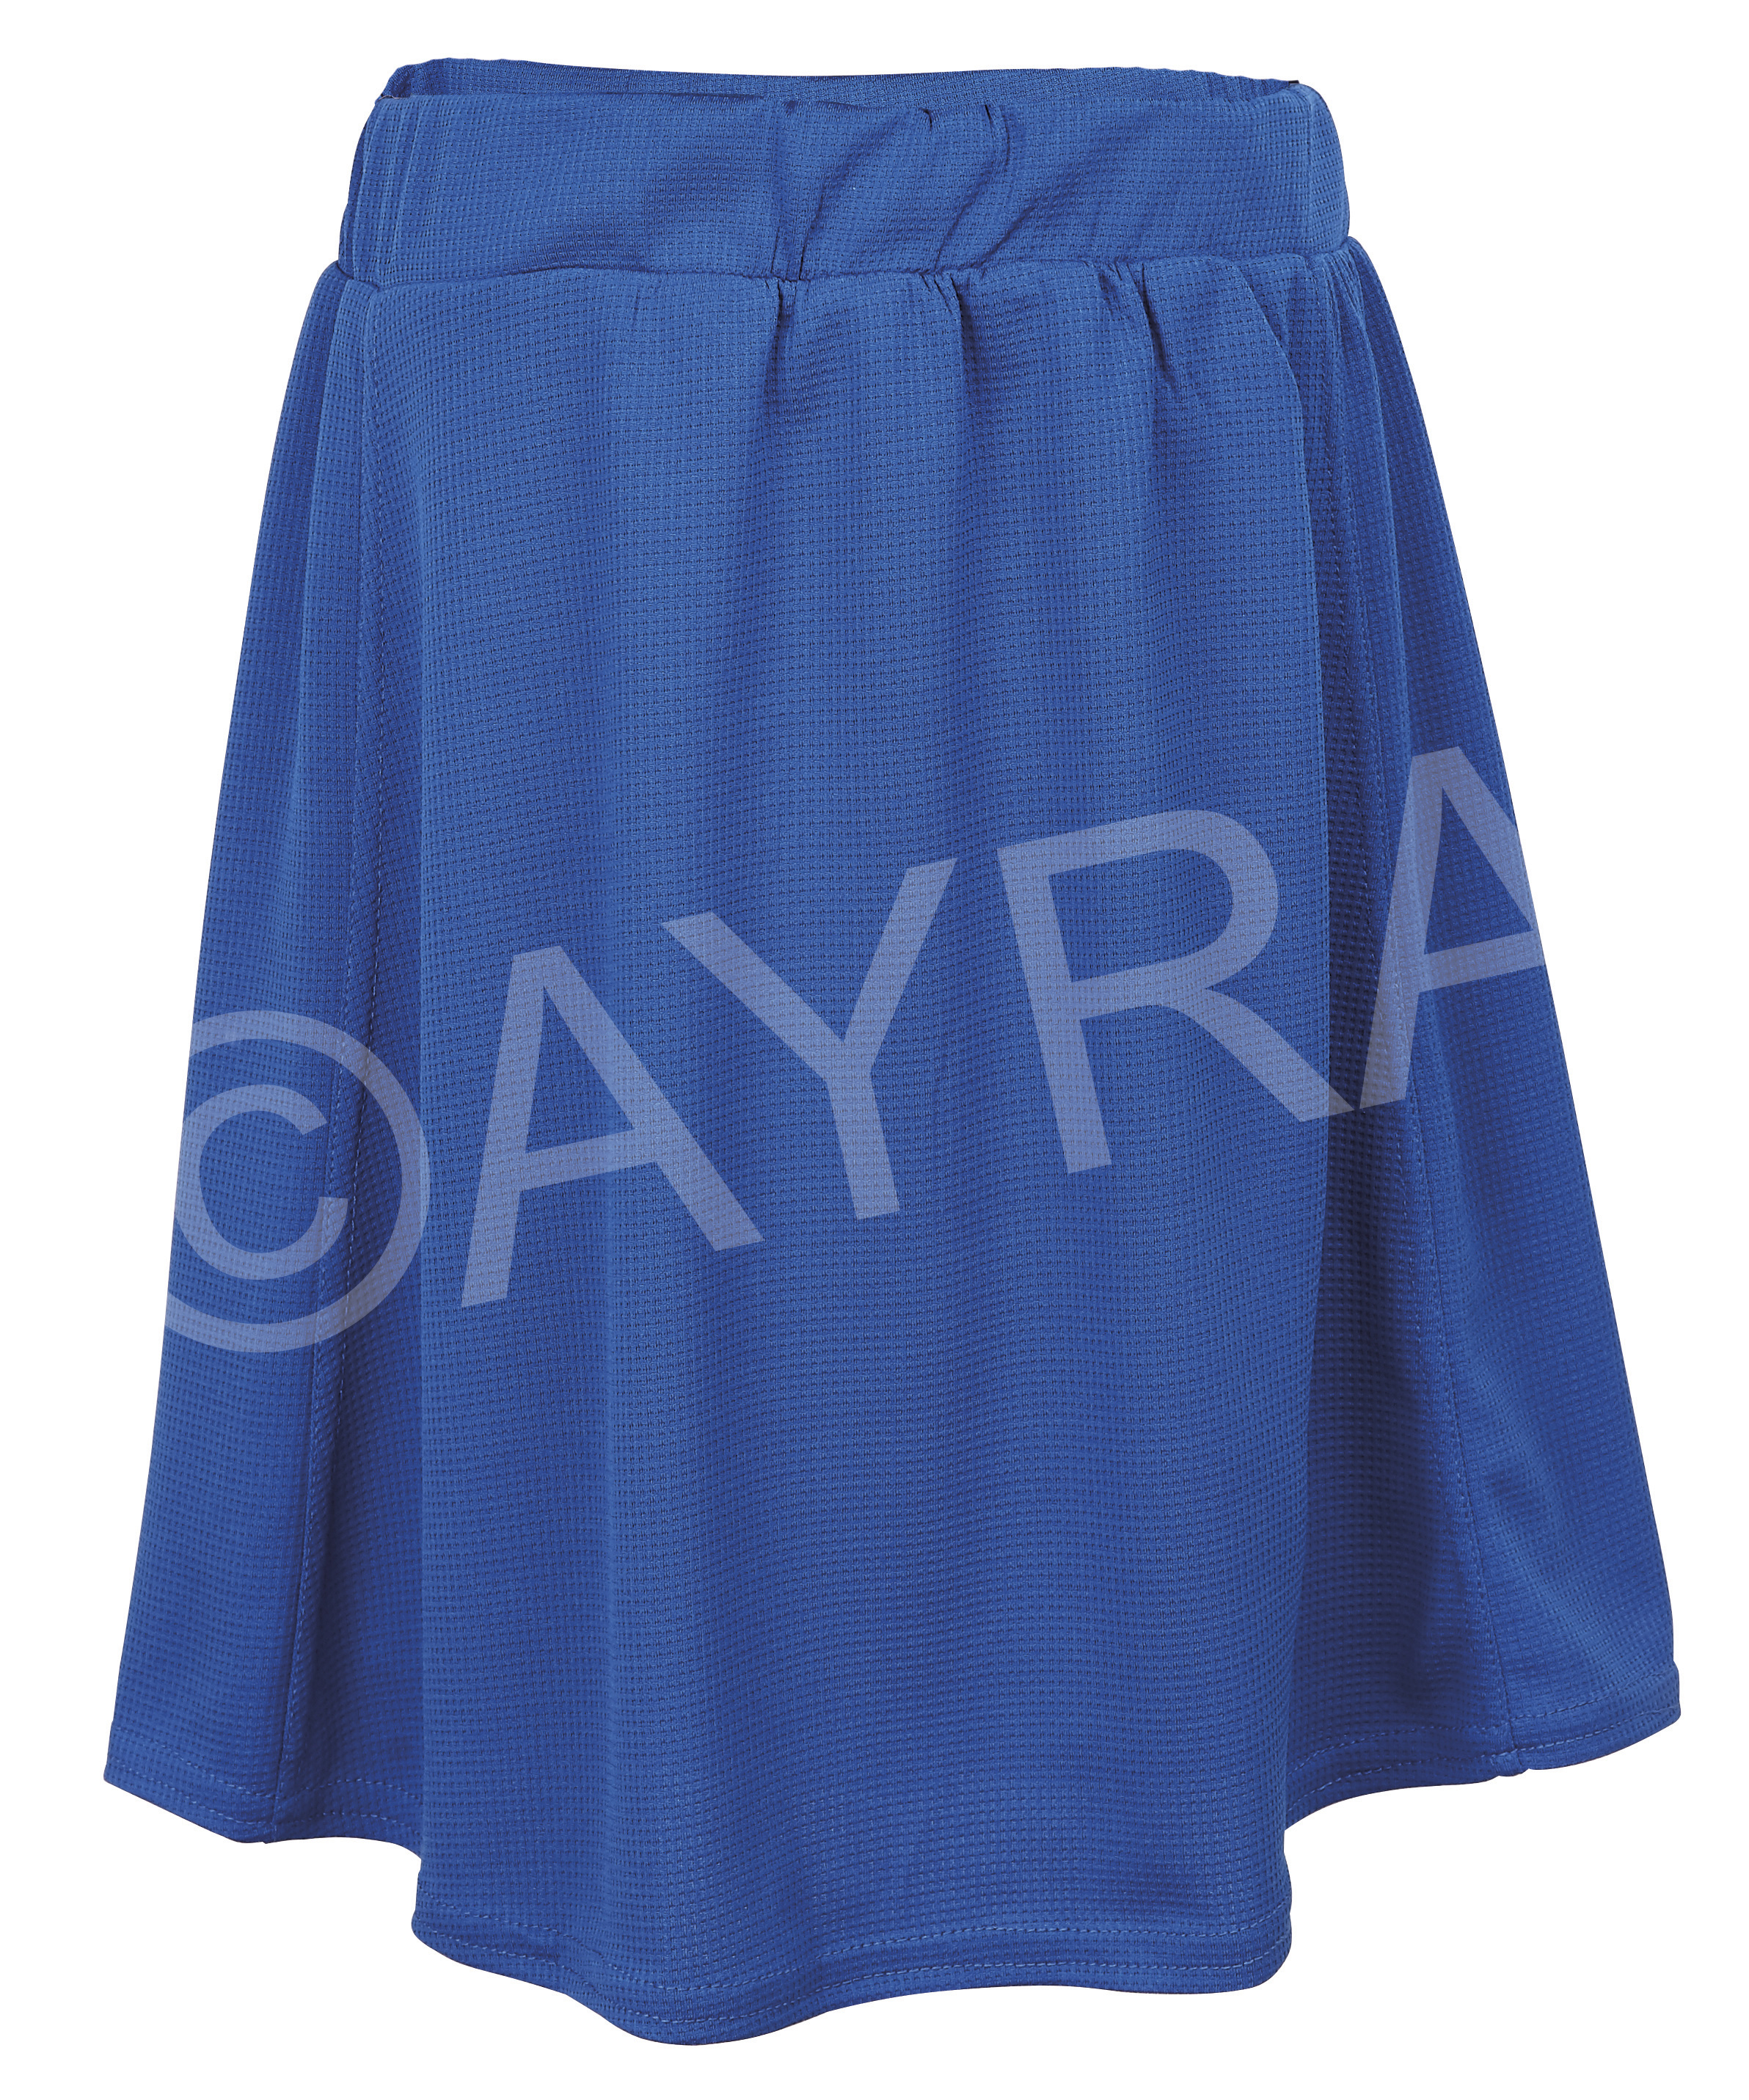 royal-blue-skirt-with-under-shorts-watermarks.jpg